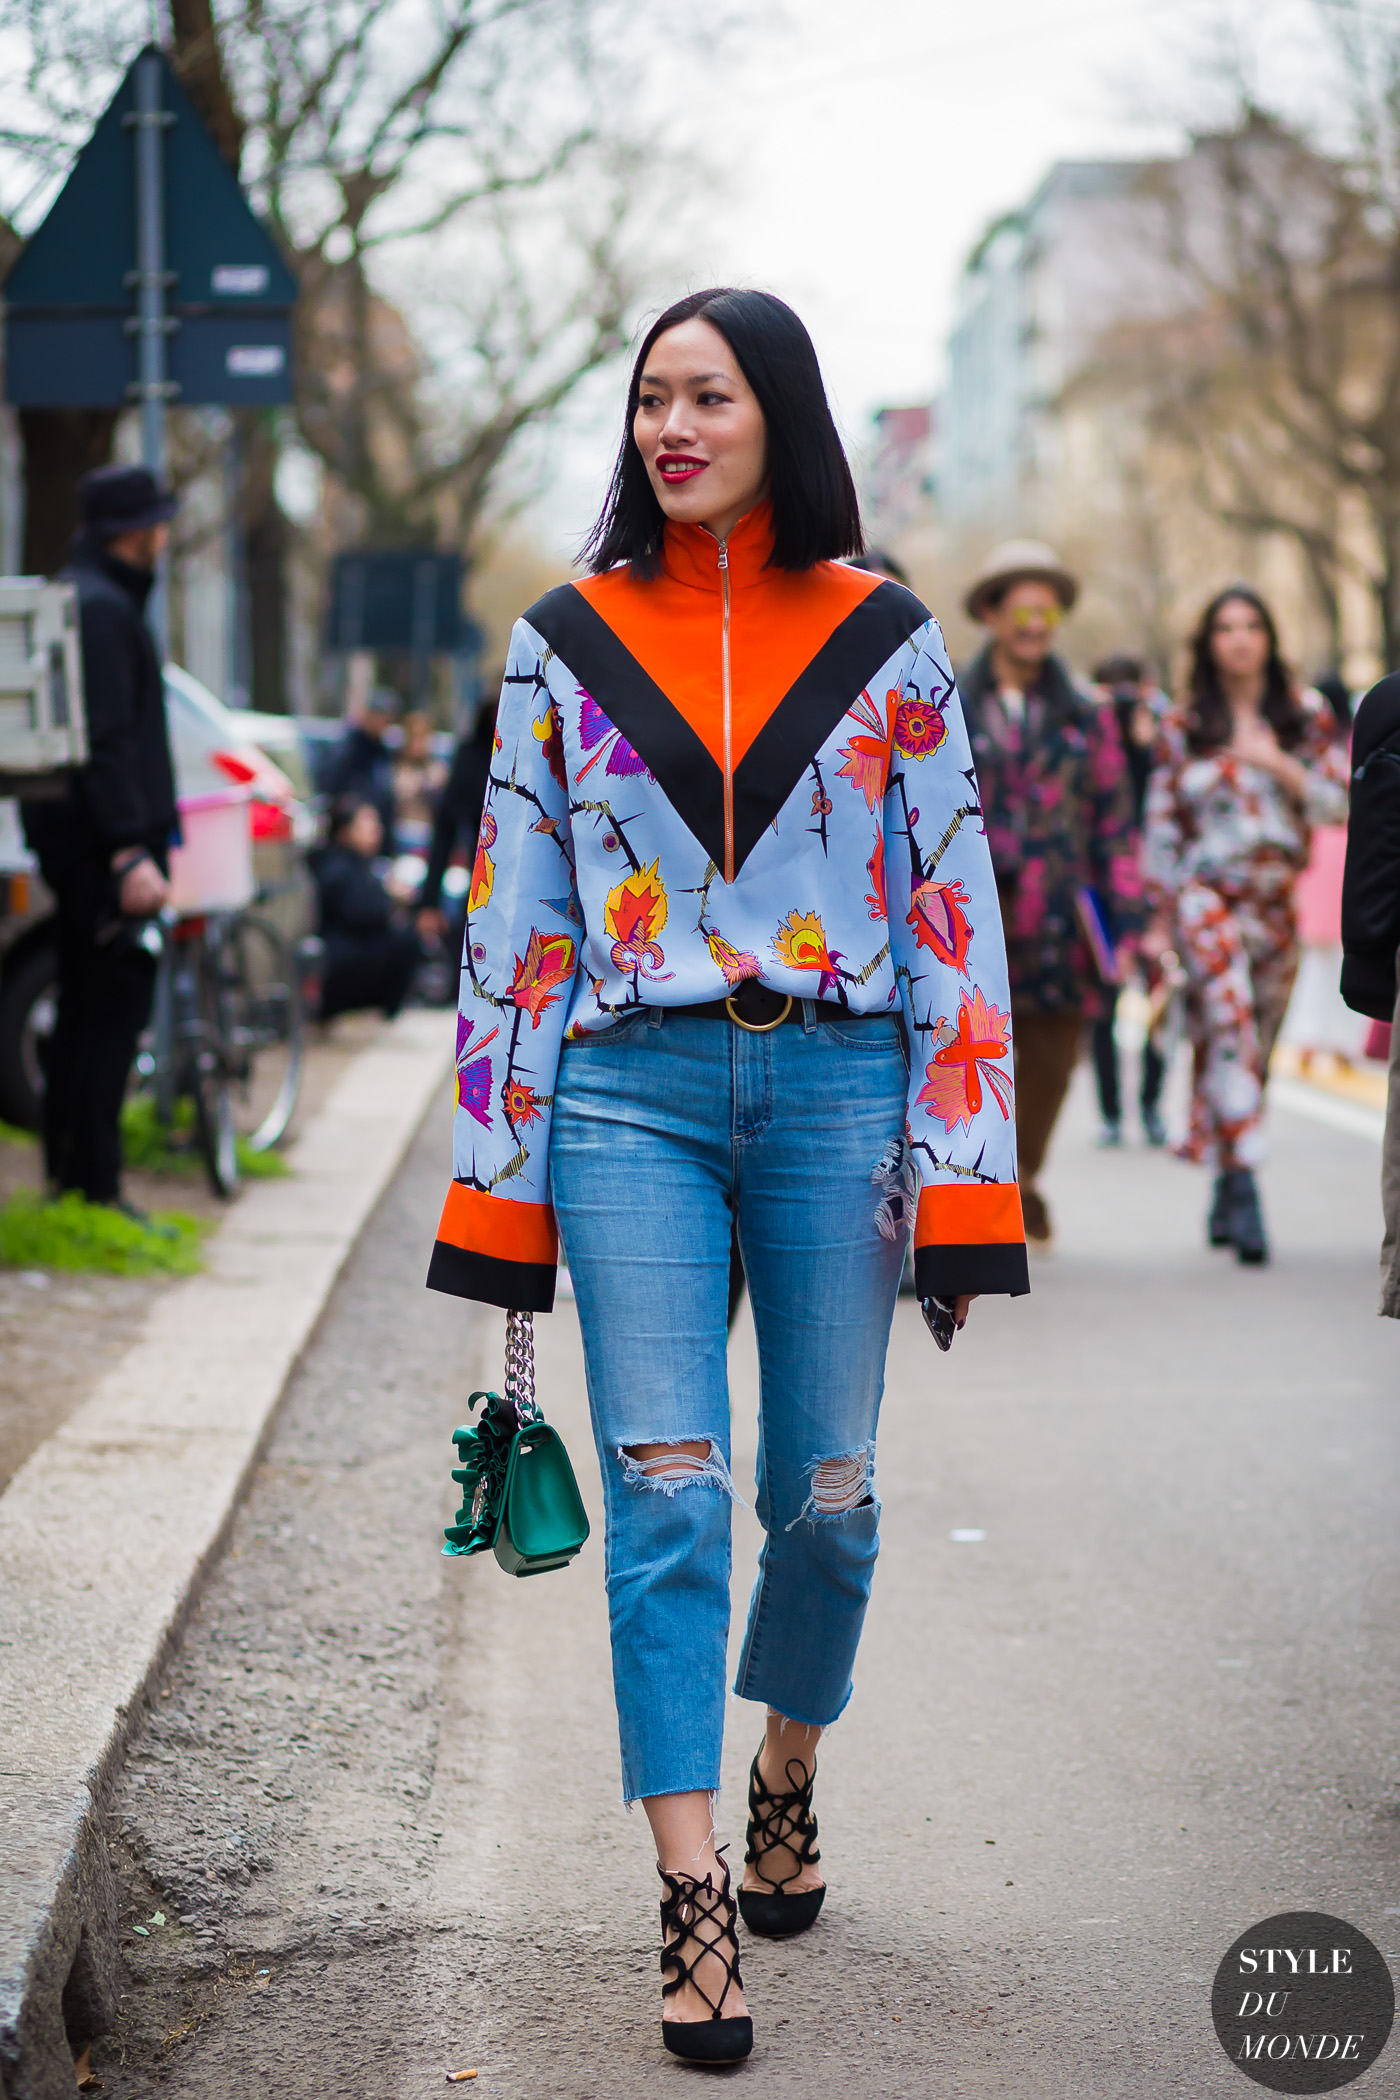 Tiffany Hsu Street Style Street Fashion Streetsnaps by STYLEDUMONDE Street Style Fashion Photography